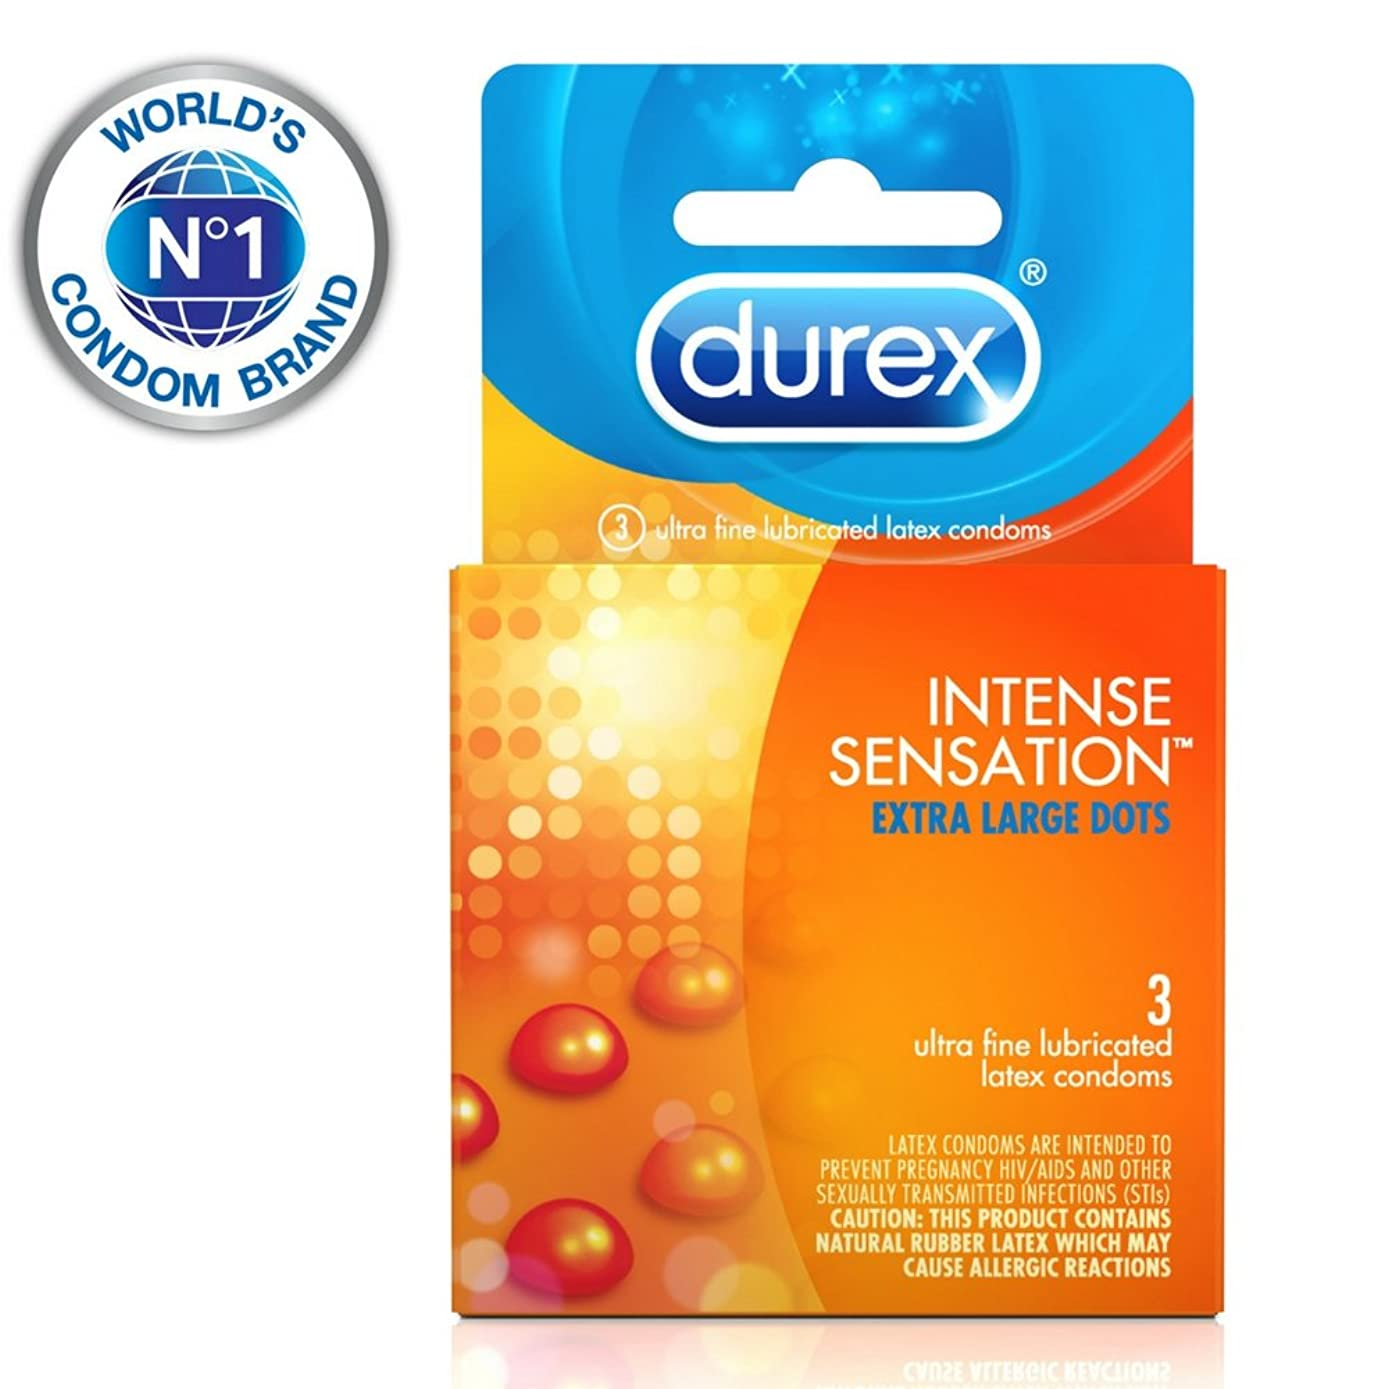 Condoms, Durex Intense Sensation Dotted Condom, 3 ct, Ultra Fine & Lubricated with Dots for Intense Pleasure HSA Eligible